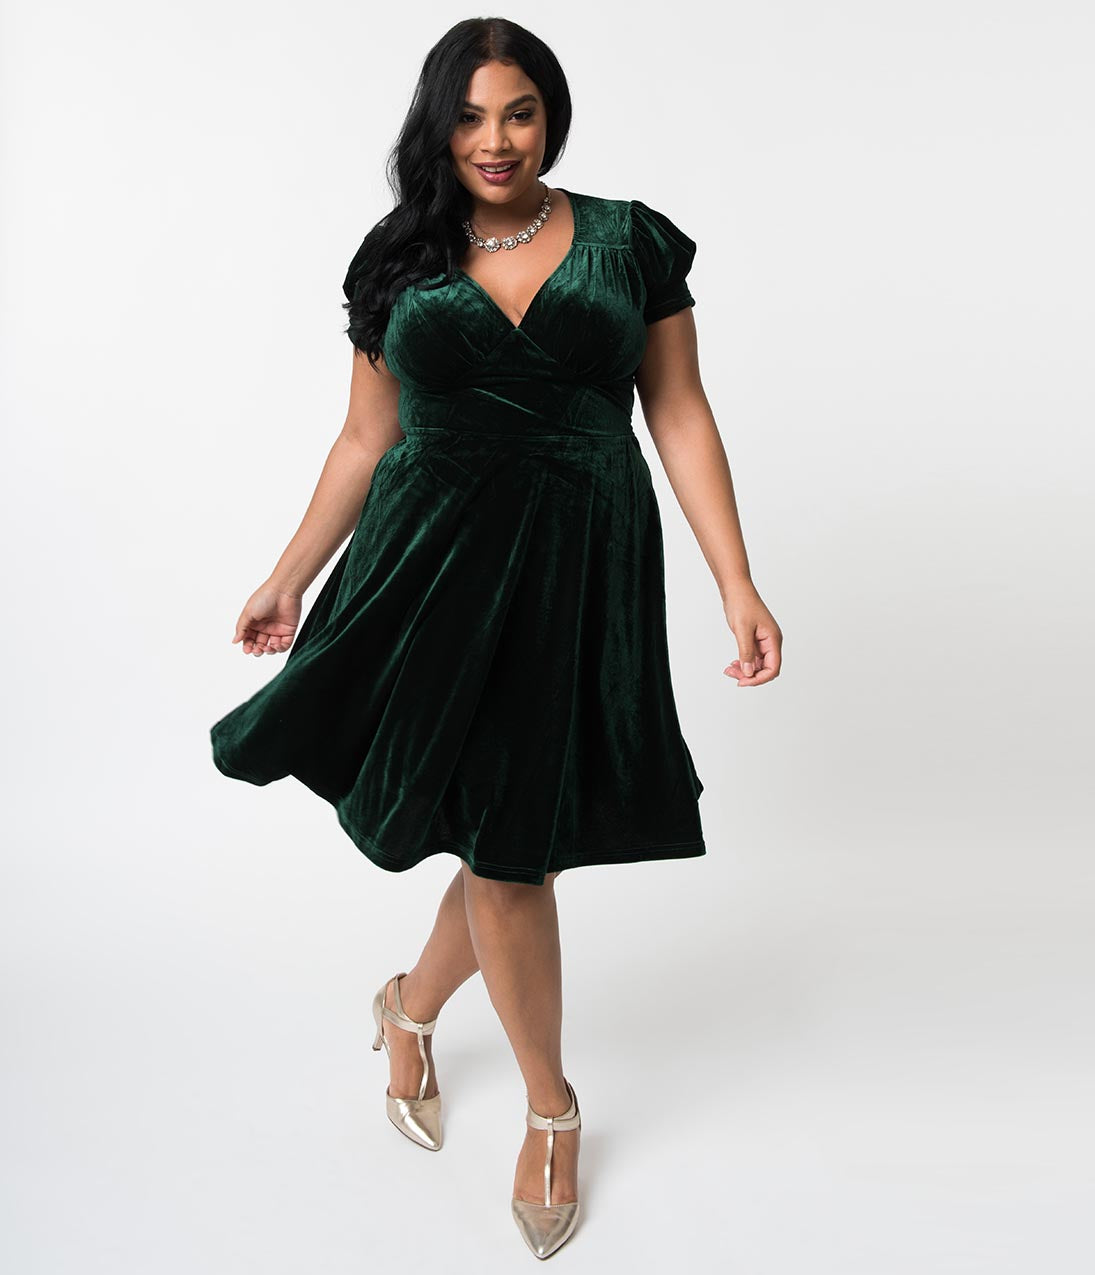 Vintage Christmas Dress | Party Dresses | Night Out Outfits Hell Bunny Plus Size Emerald Velvet Short Sleeve Joanna Flare Dress $78.00 AT vintagedancer.com